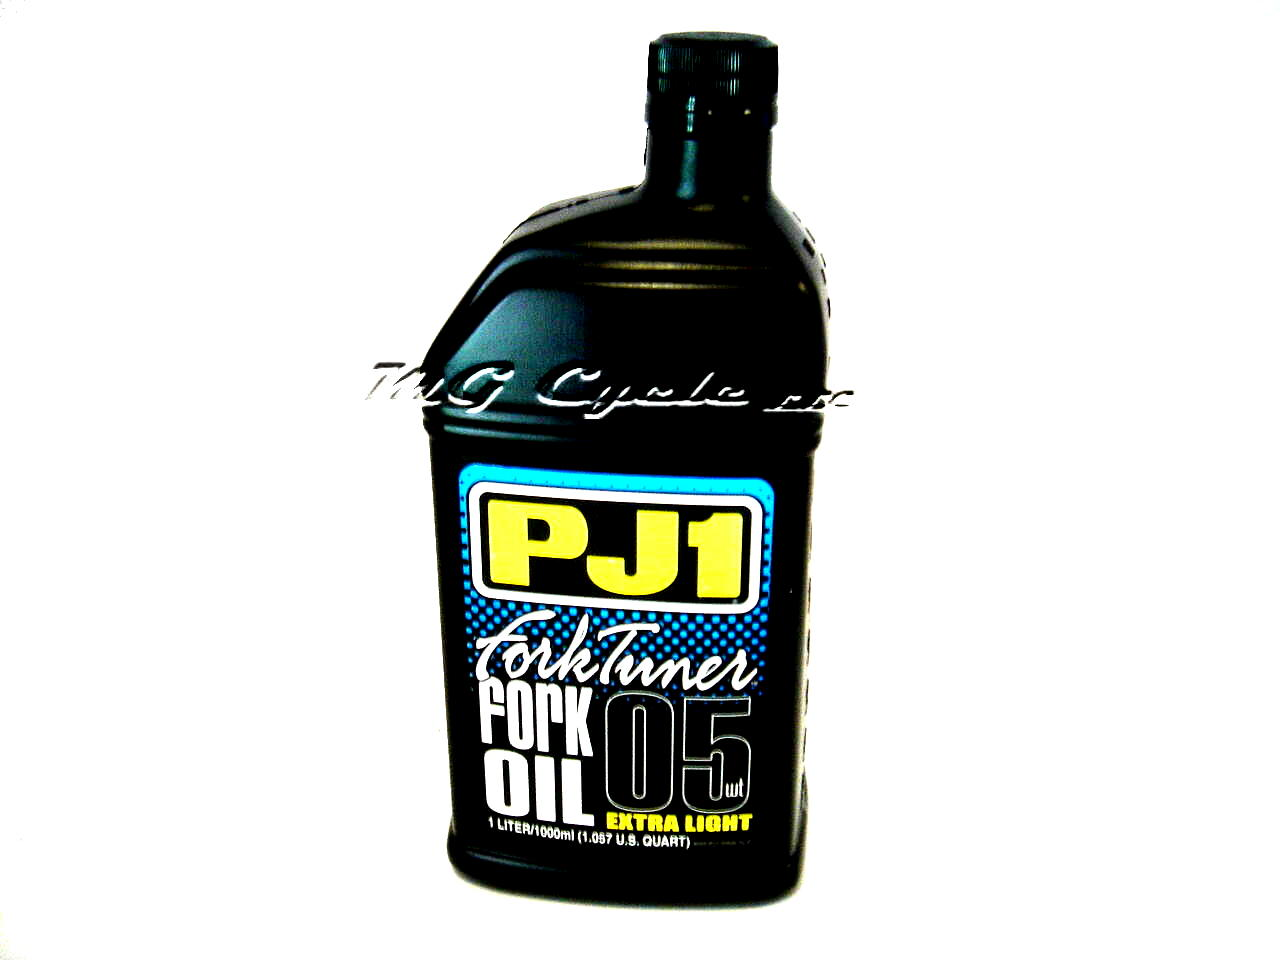 PJ1 Fork Tuner fork oil 5W extra light, 1 liter bottle